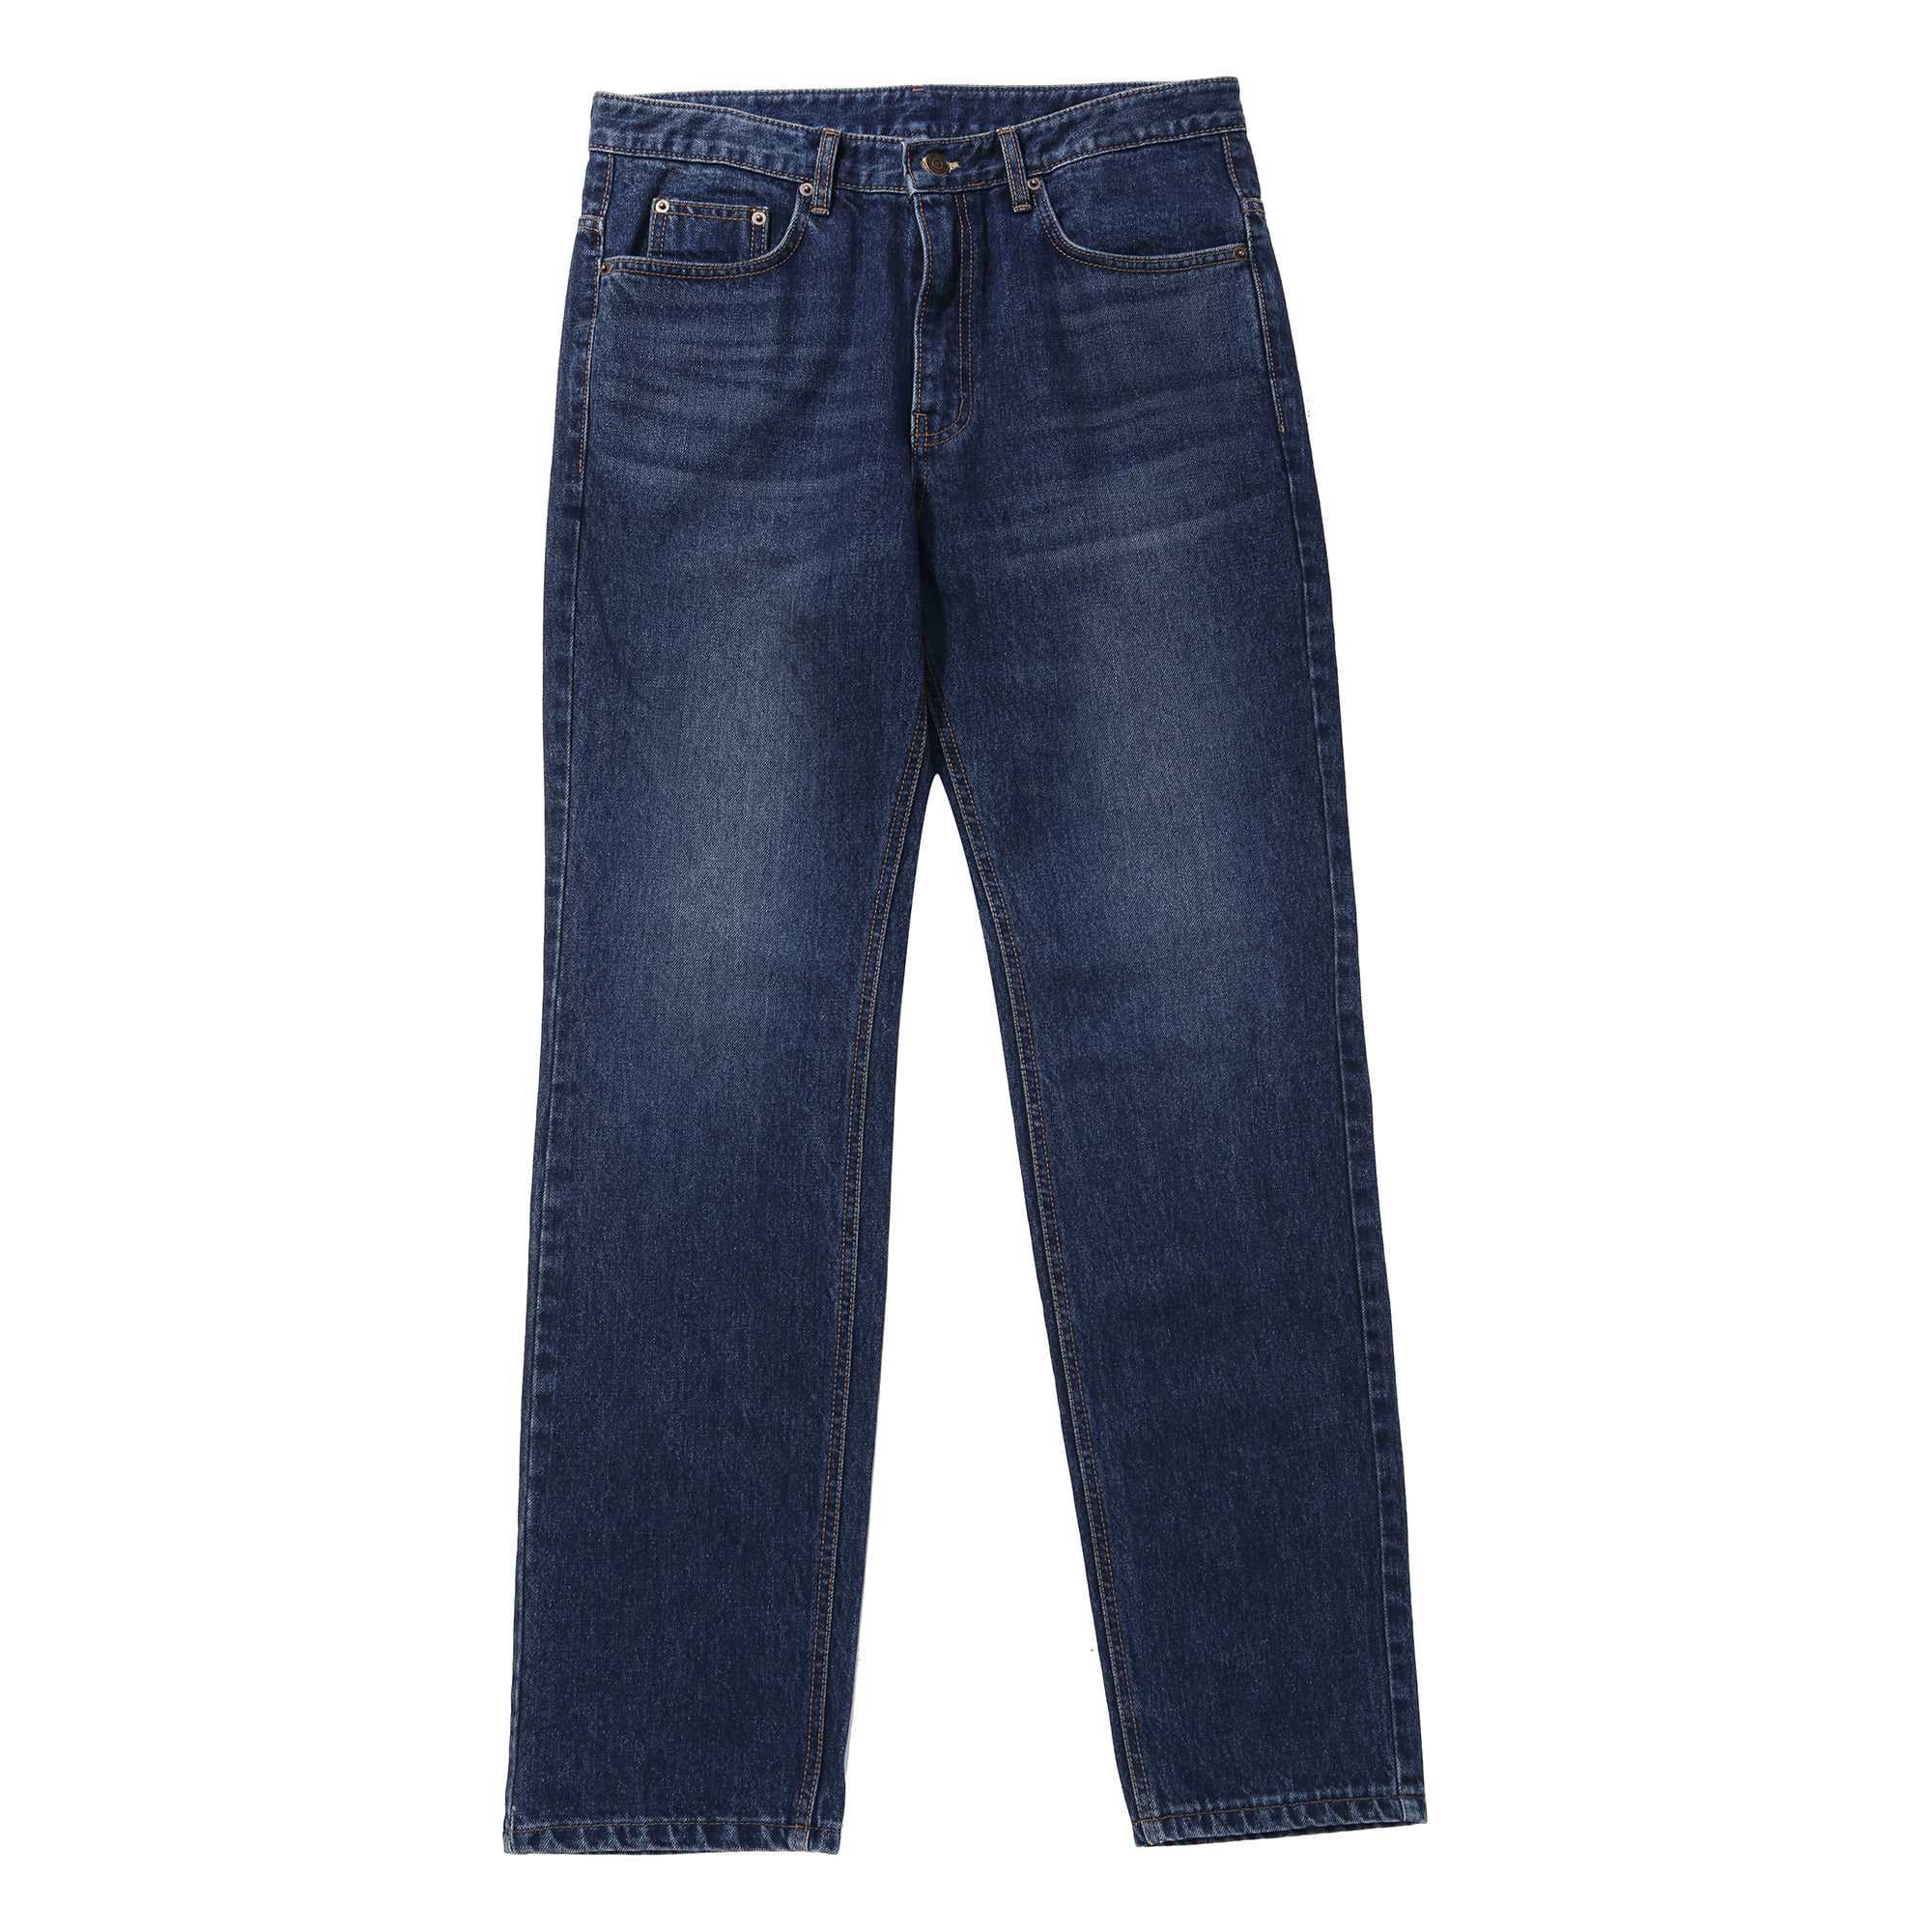 19FW MM Straight Jeans MYFAH4502